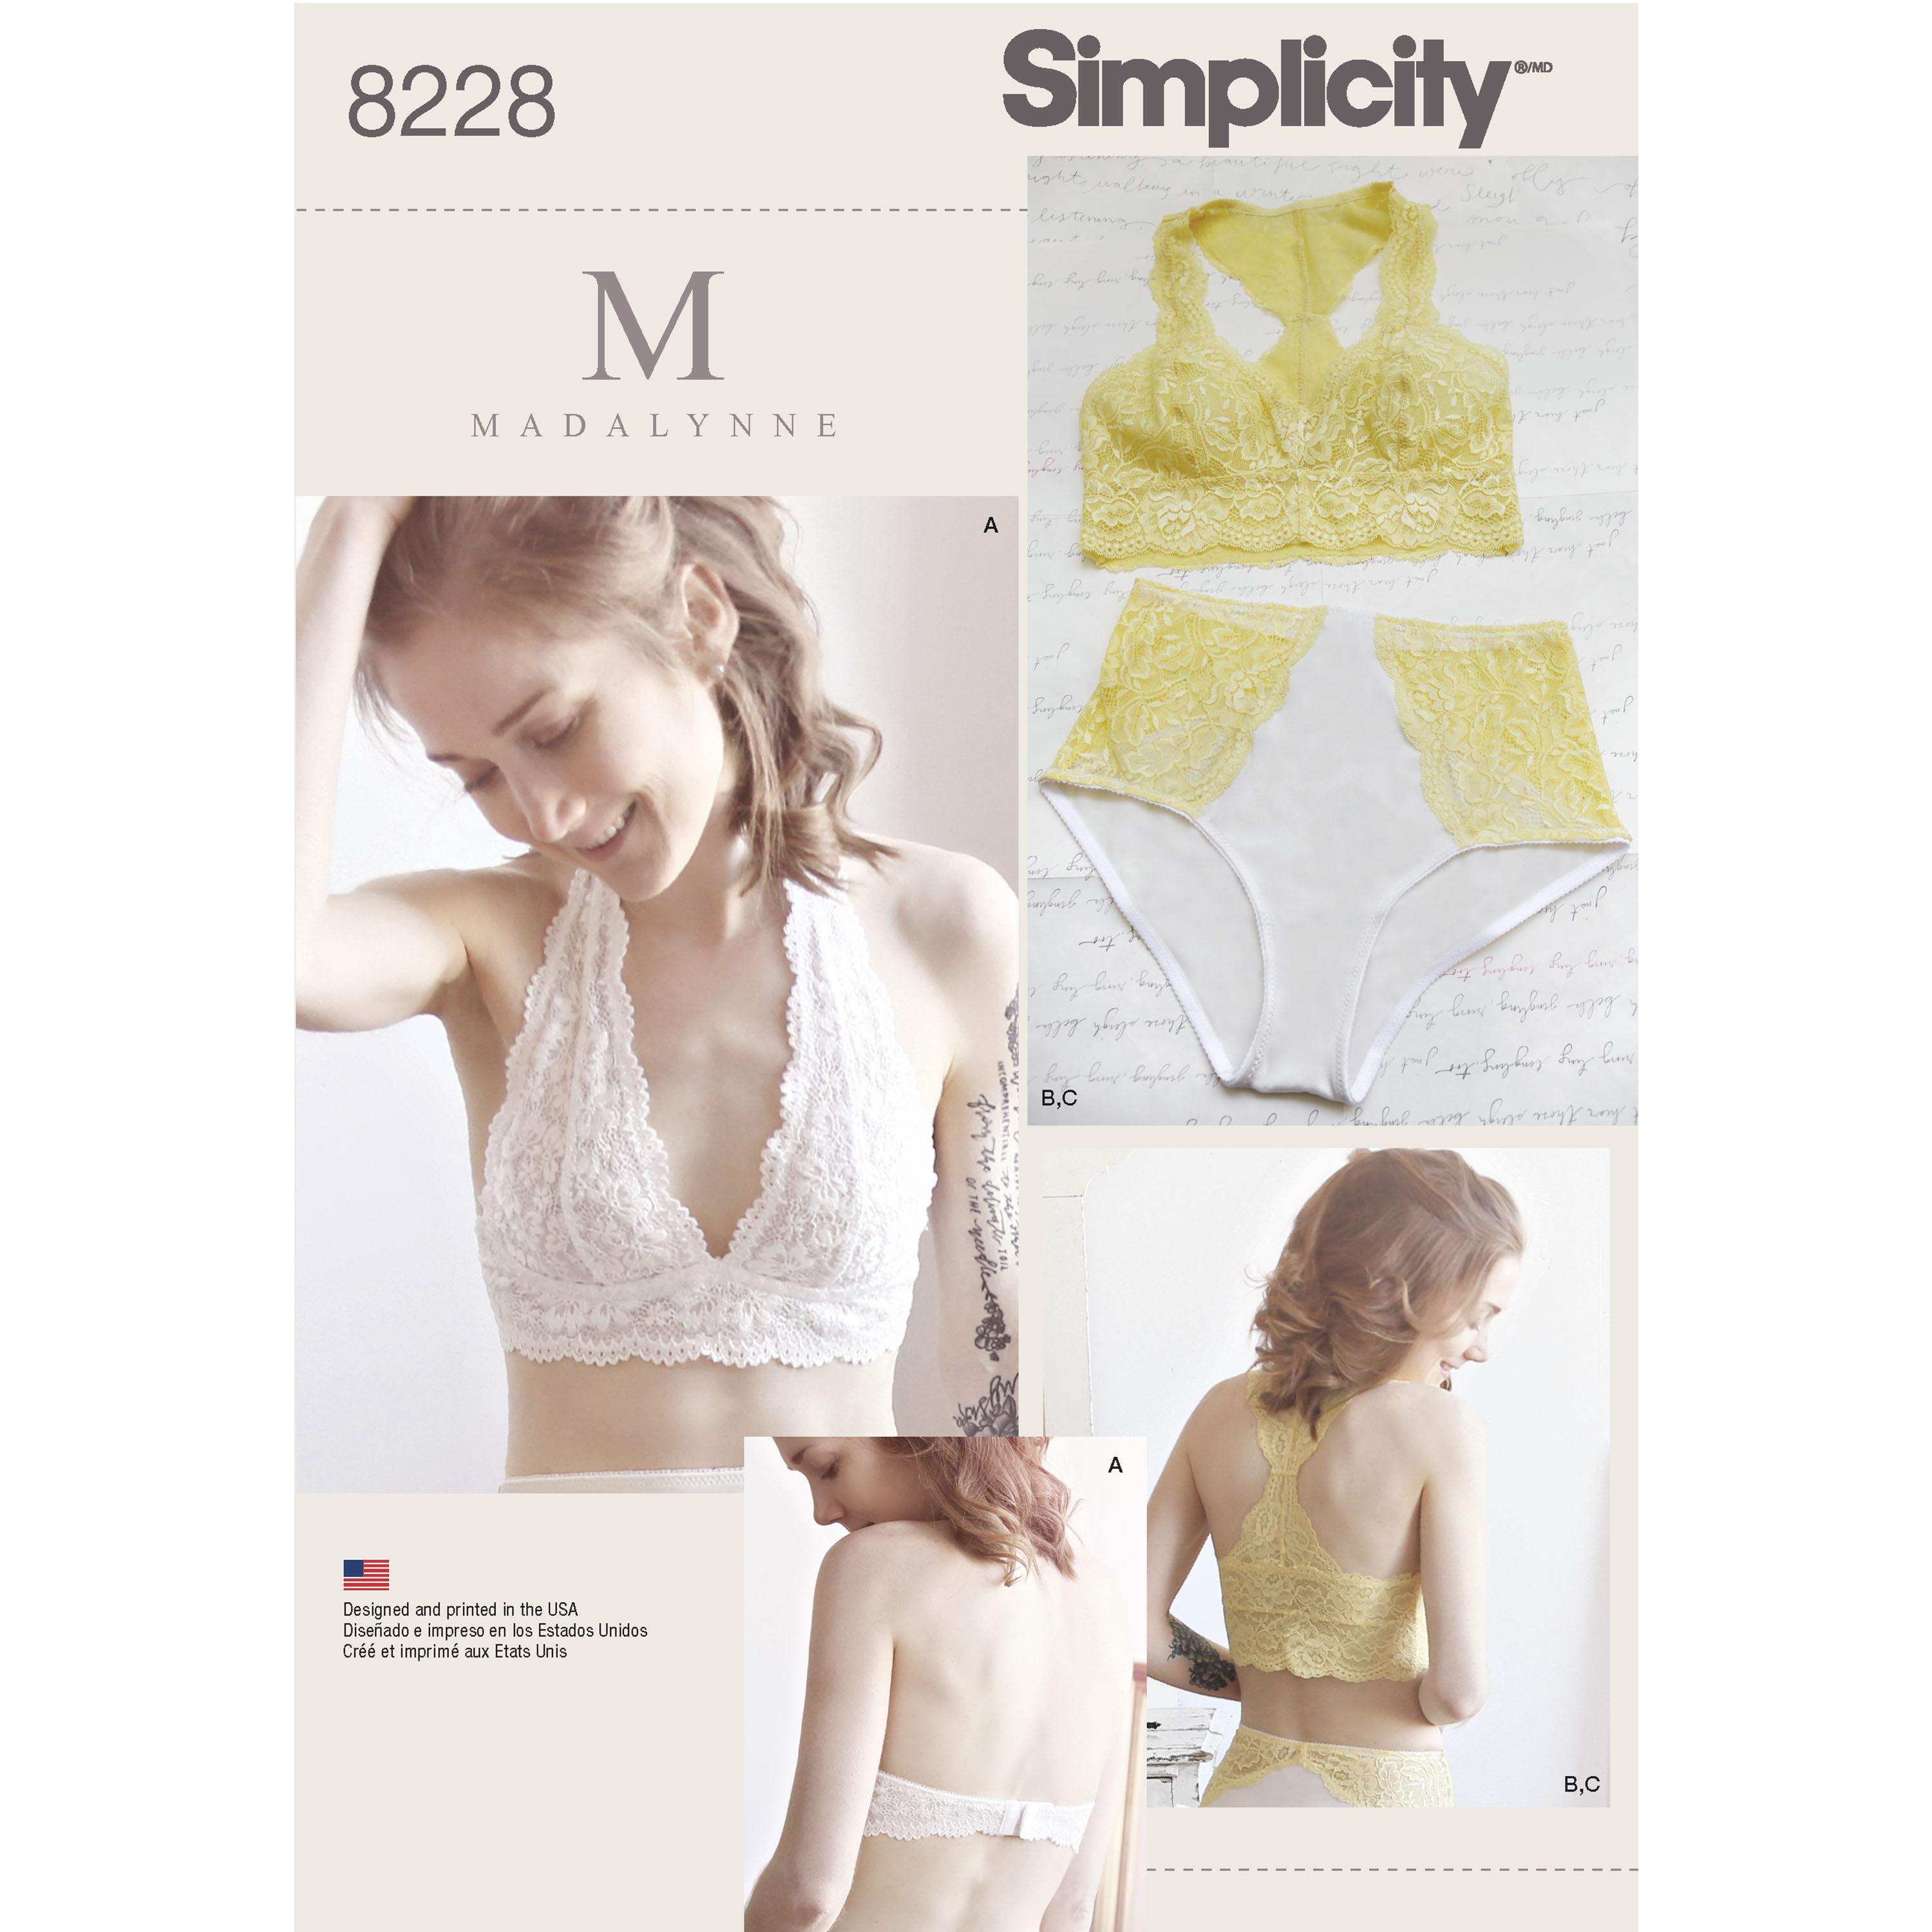 Simplicity S8228 Women's Soft Cup Bras and Panties